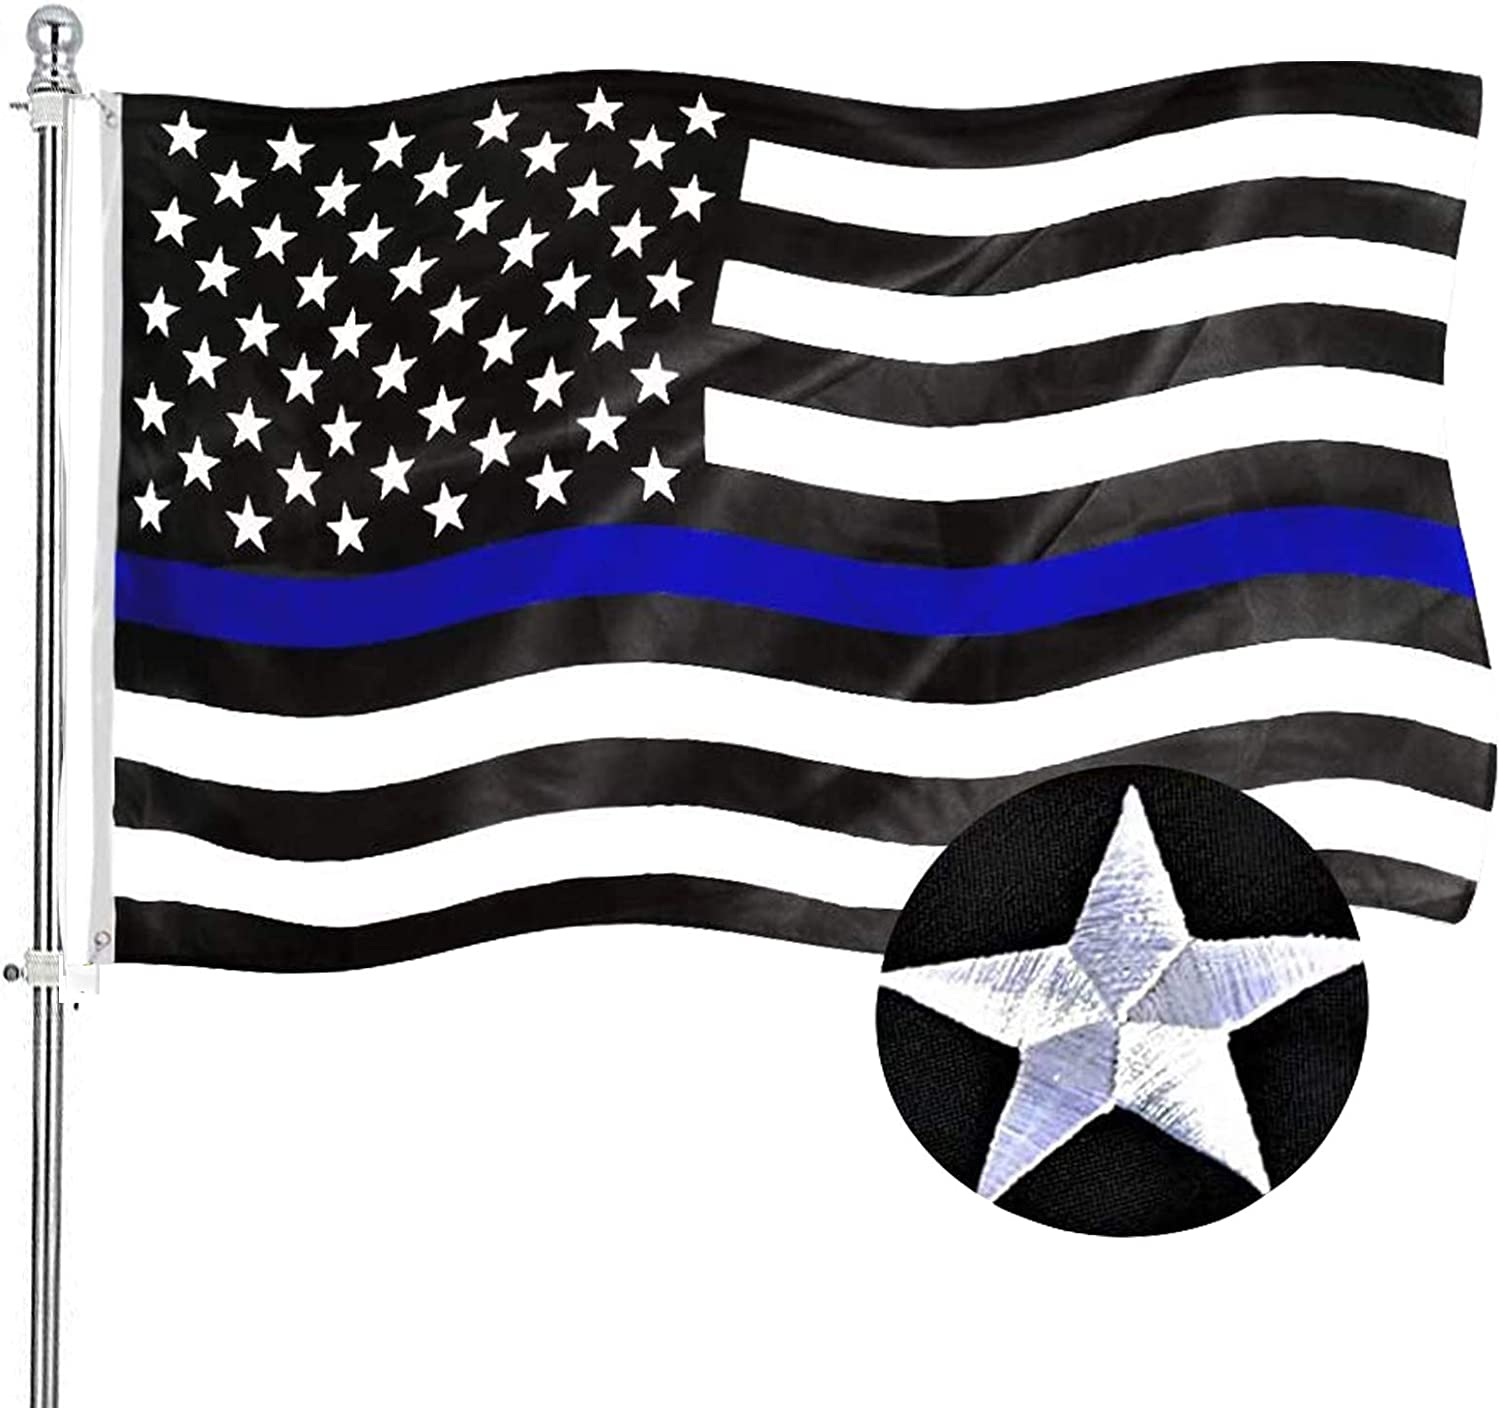 Embroidered Blue Line American Police Flag 3x5 Outdoor- Support Police Flag Blue Line- Blue Lives Law Enforcement Heavy Duty 210D Nylon with Embroidered Stars 4 Stitches Hem